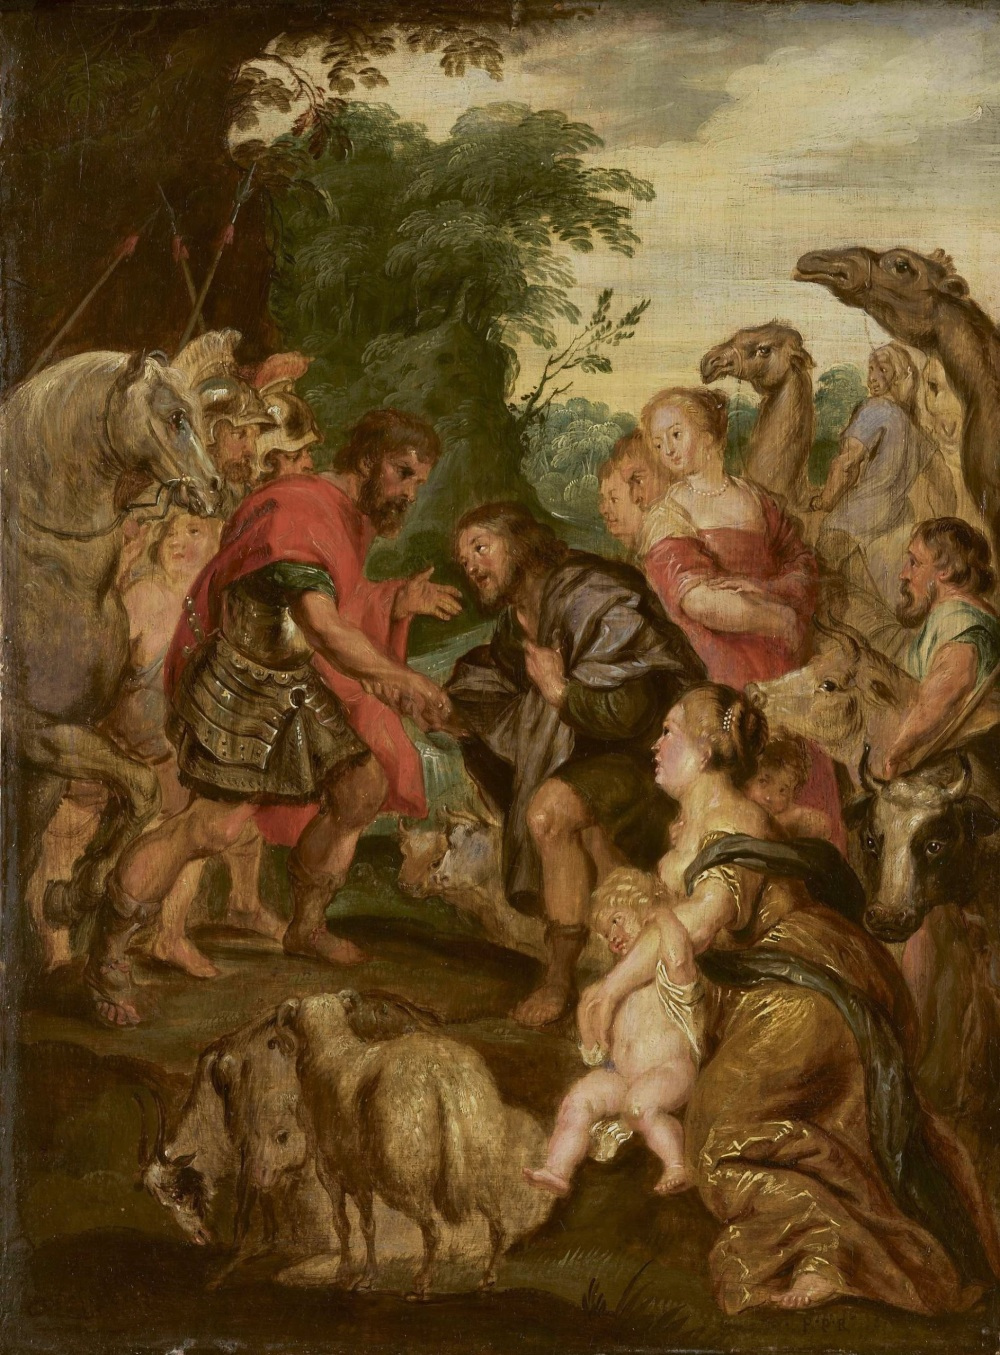 The-Reconciliation-of-Jacob-and-Esau.-1600-1699-Peter-Paul-Rubens-oil-painting.jpg